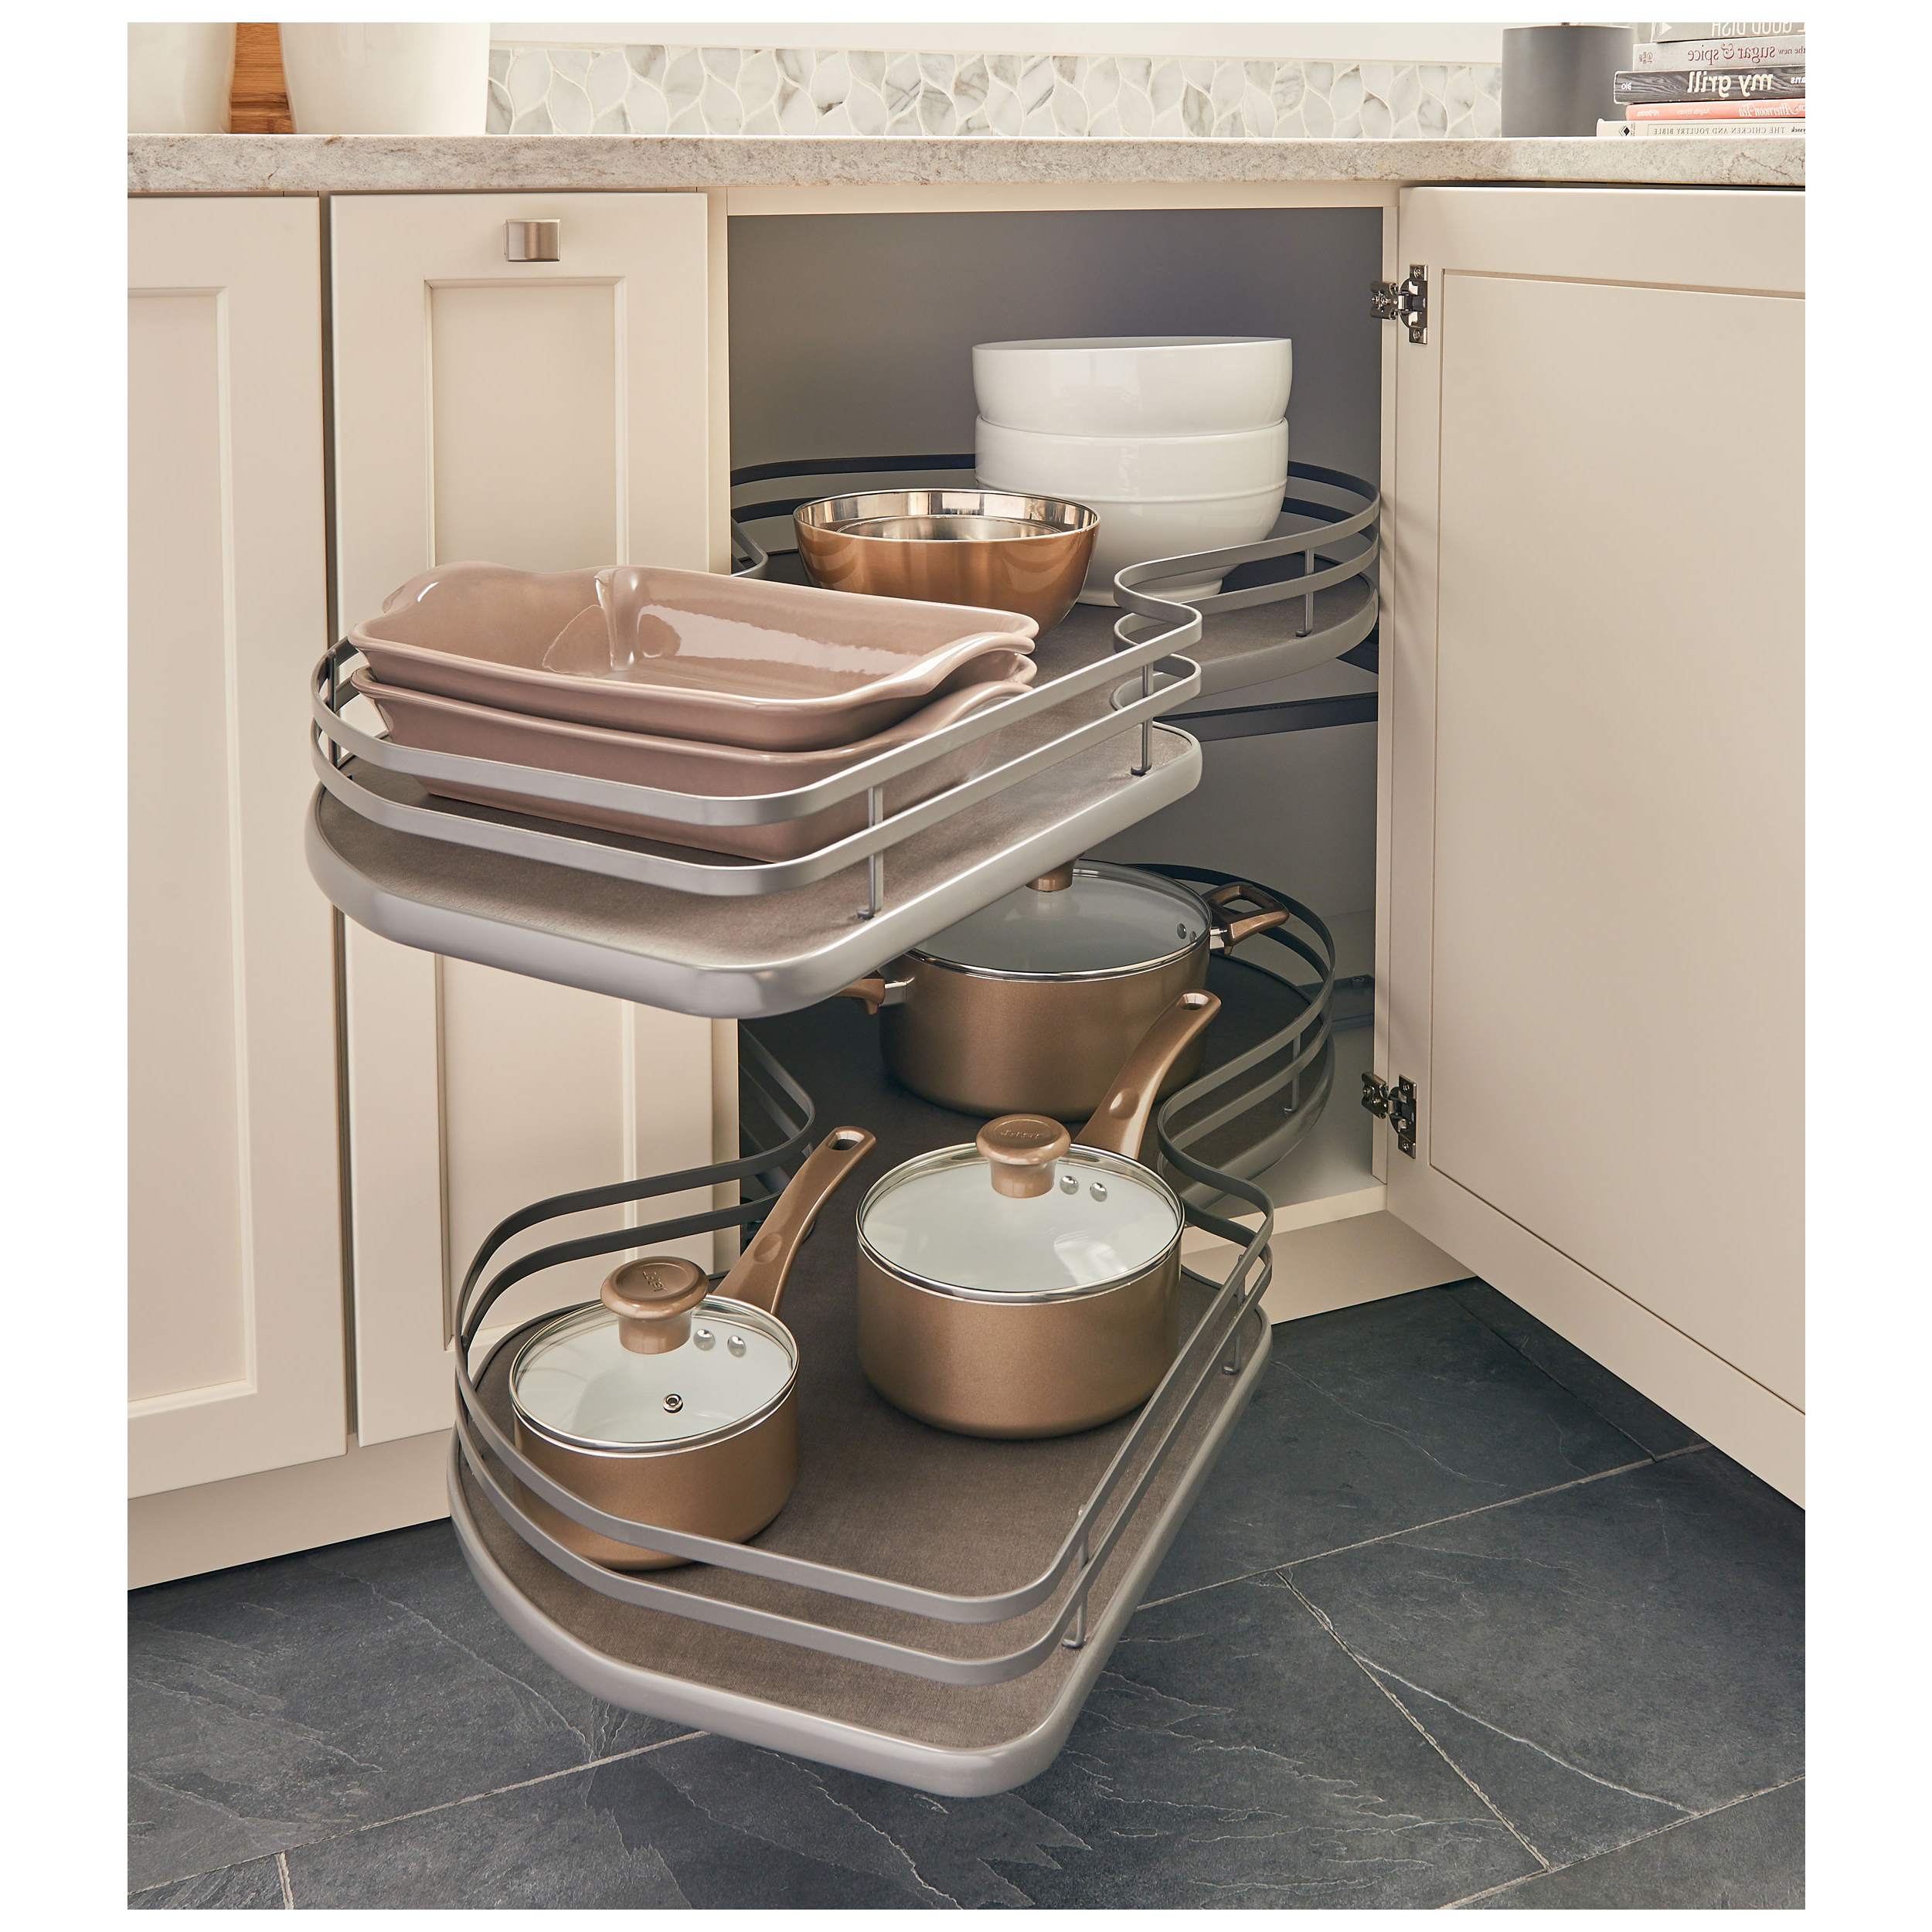 Rev A Shelf 5372 15 Fog L The Cloud 15 Blind Corner Pull Out Double Tier Orion Gray Left Hand